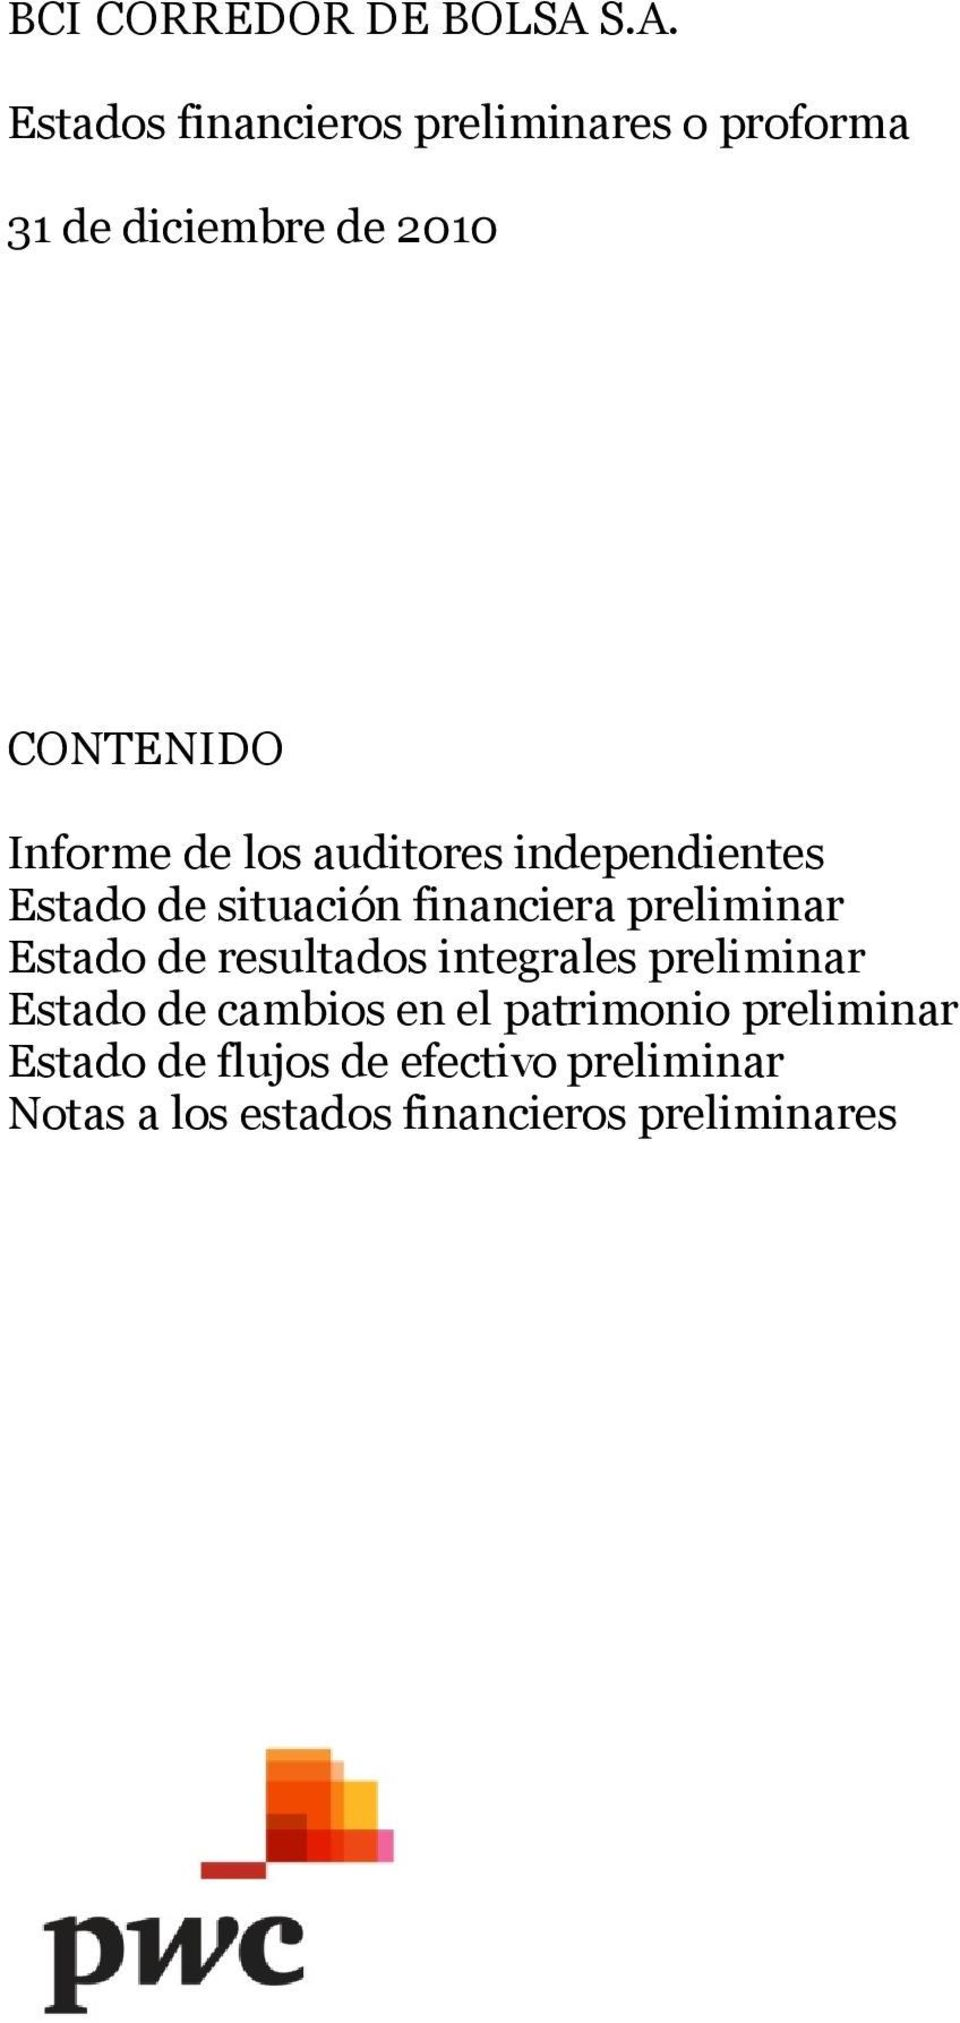 Informe de los auditores independientes Estado de situación financiera preliminar Estado